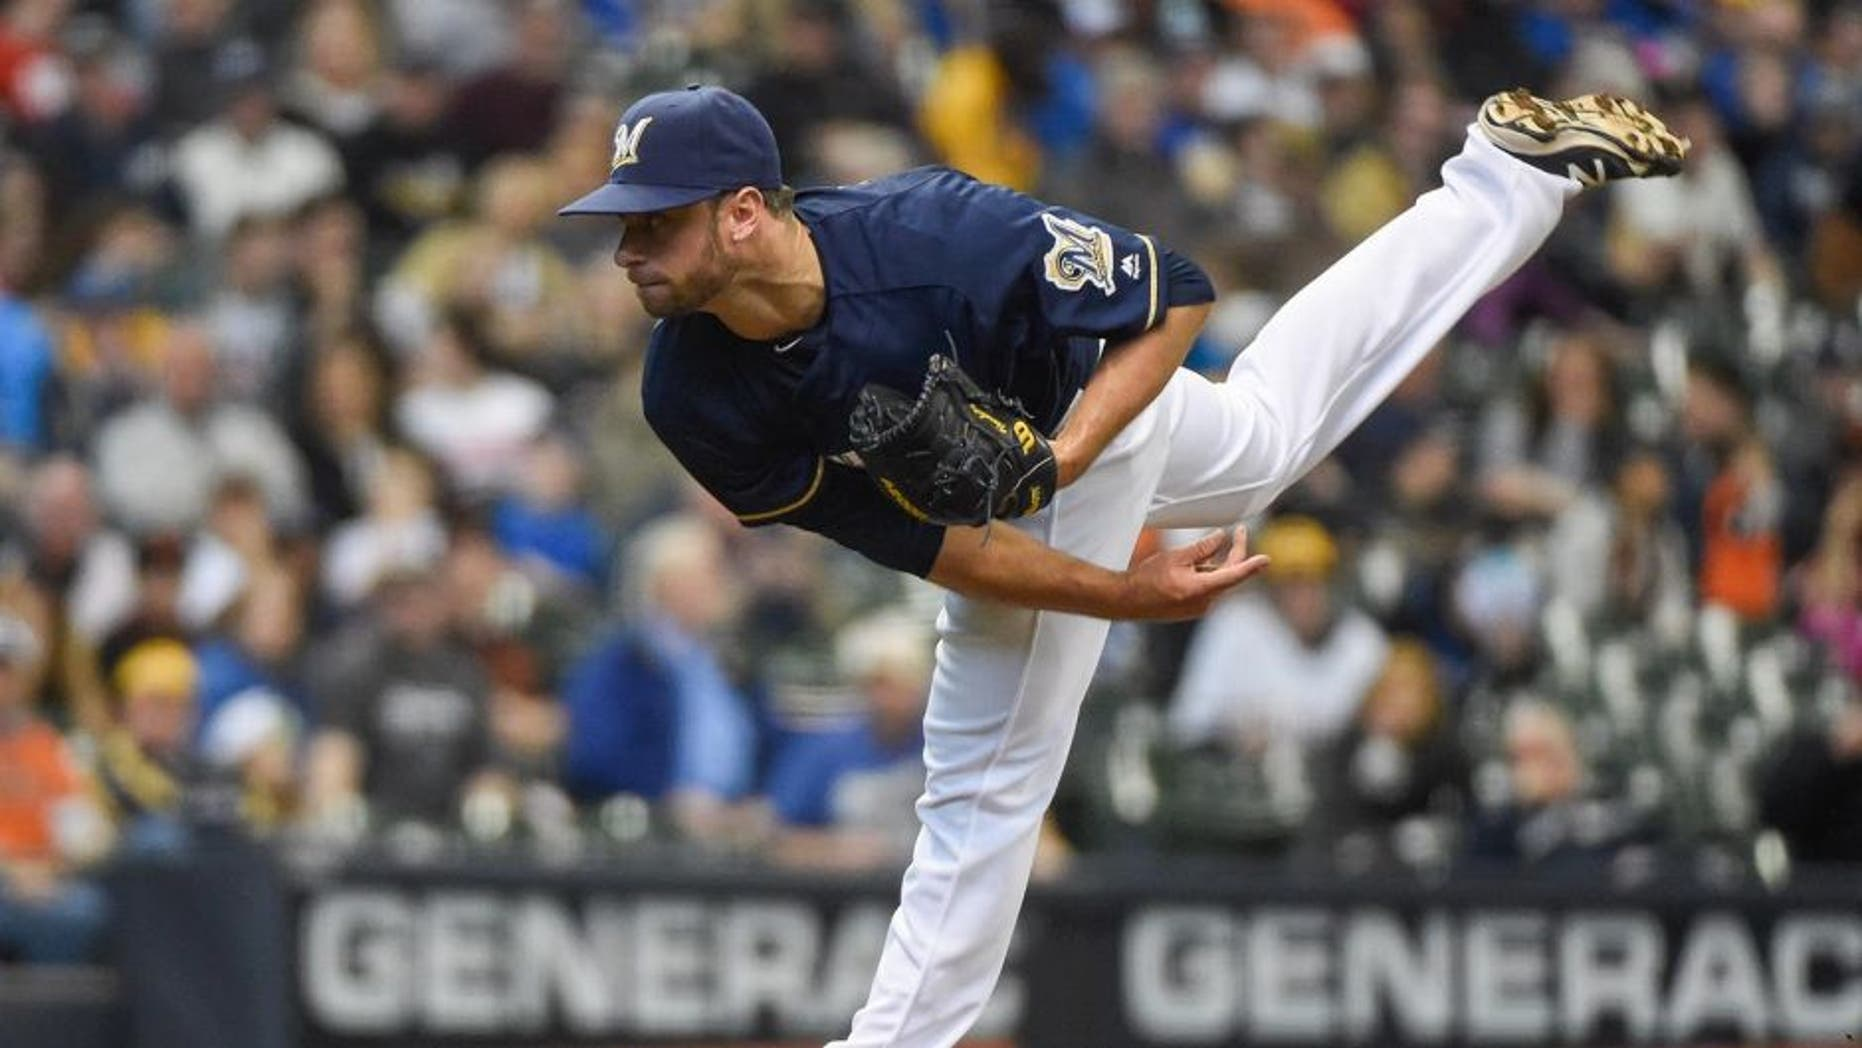 Apr 6, 2016; Milwaukee, WI, USA; Milwaukee Brewers pitcher Tyler Thornburg (37) pitched an inning of scoreless relief against the San Francisco Giants at Miller Park. Thornburg picked up the win as the Brewers beat the Giants 4-3. Mandatory Credit: Benny Sieu-USA TODAY Sports